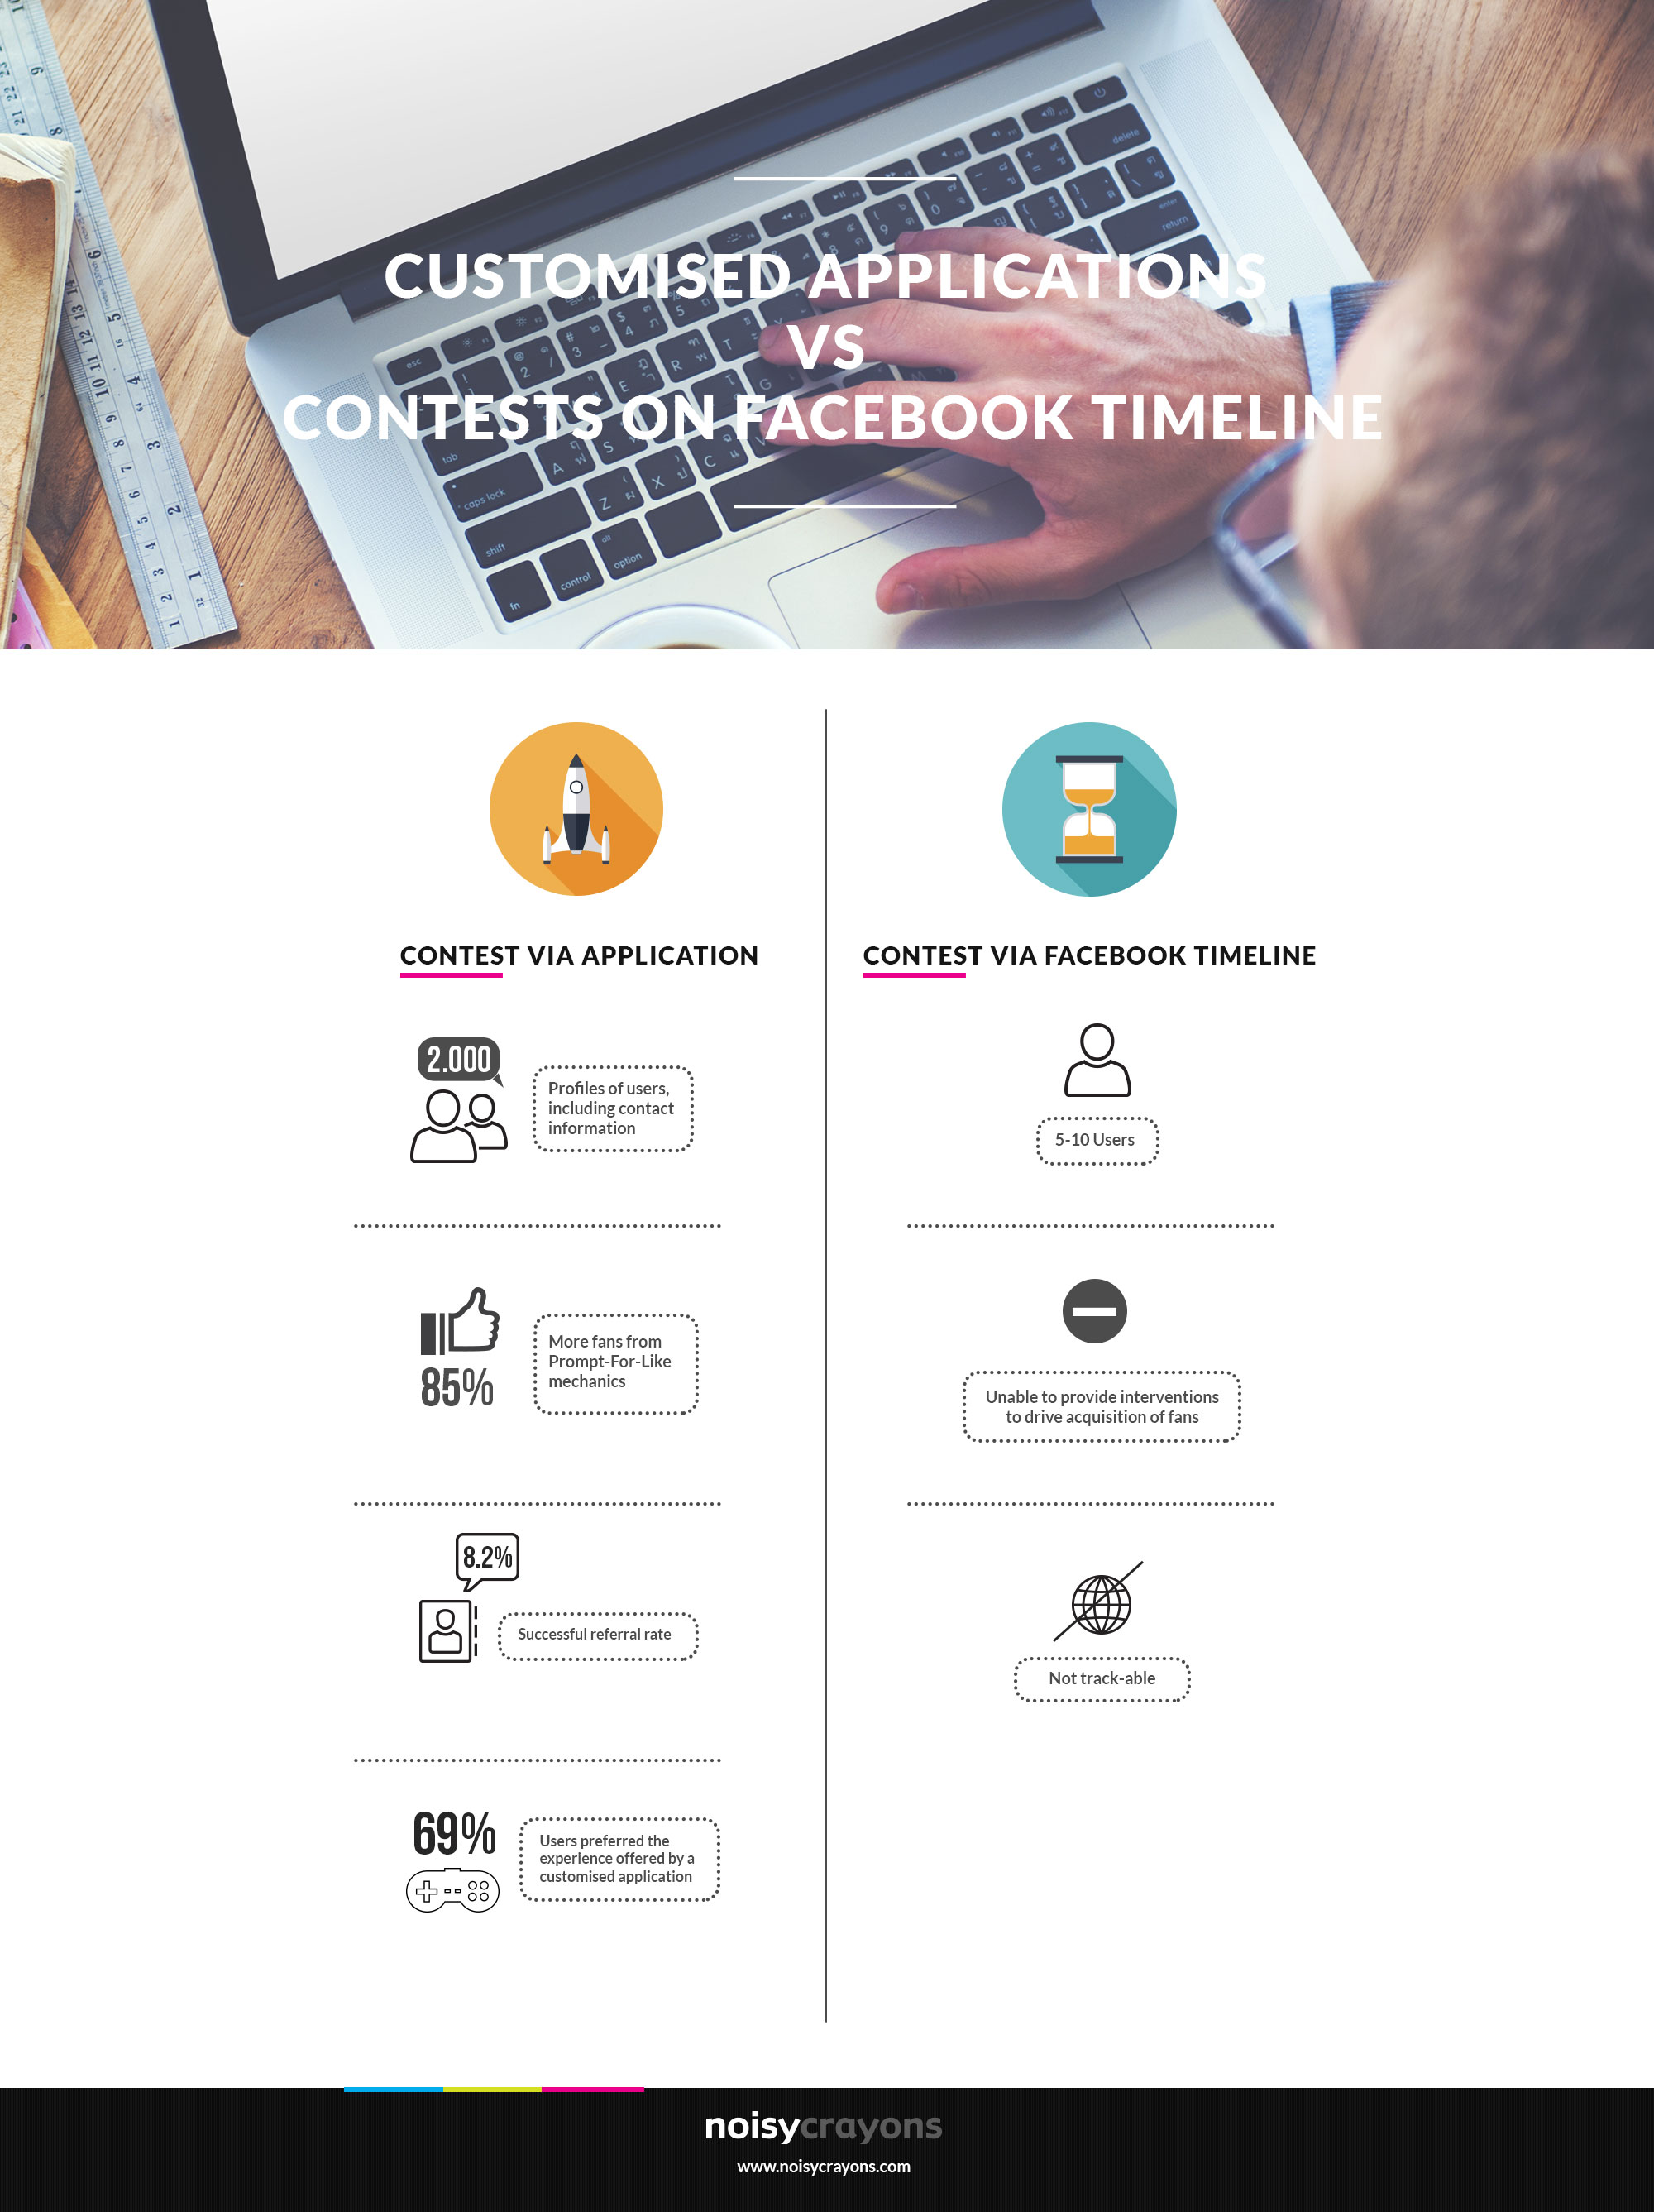 Customised Apps on Facebook deliver 85% more fans than